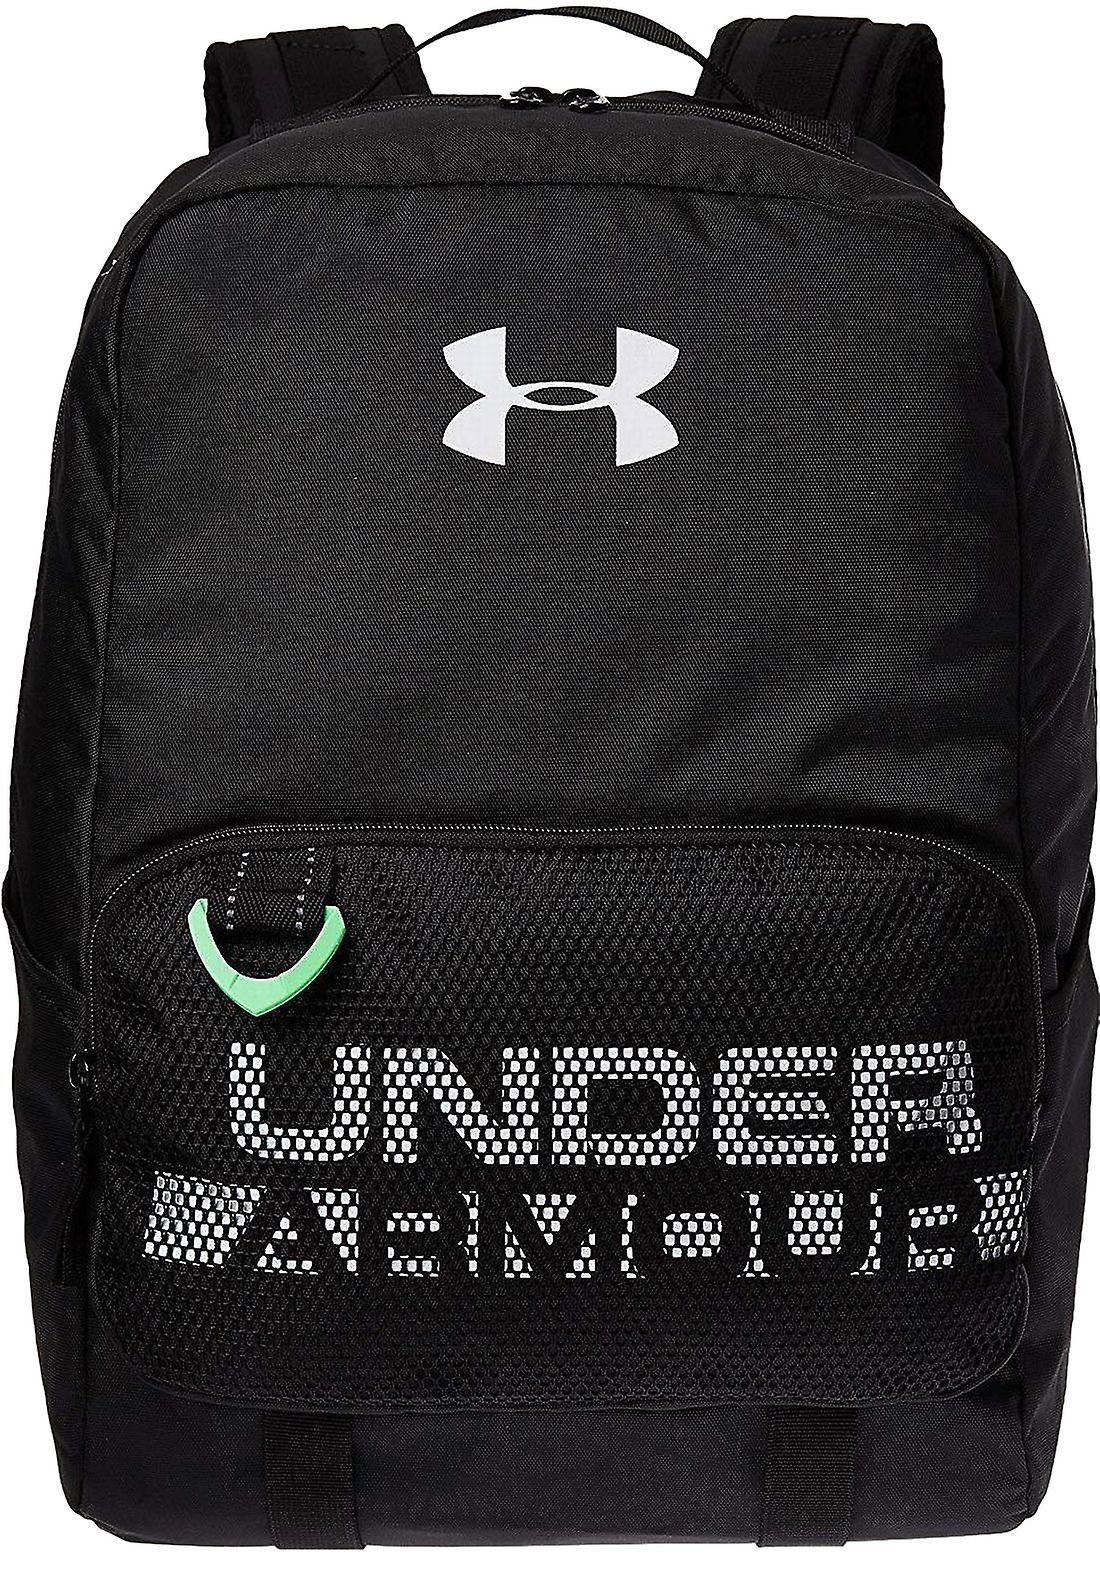 Under Armour Boy's UA Armour Select Storm Backpack